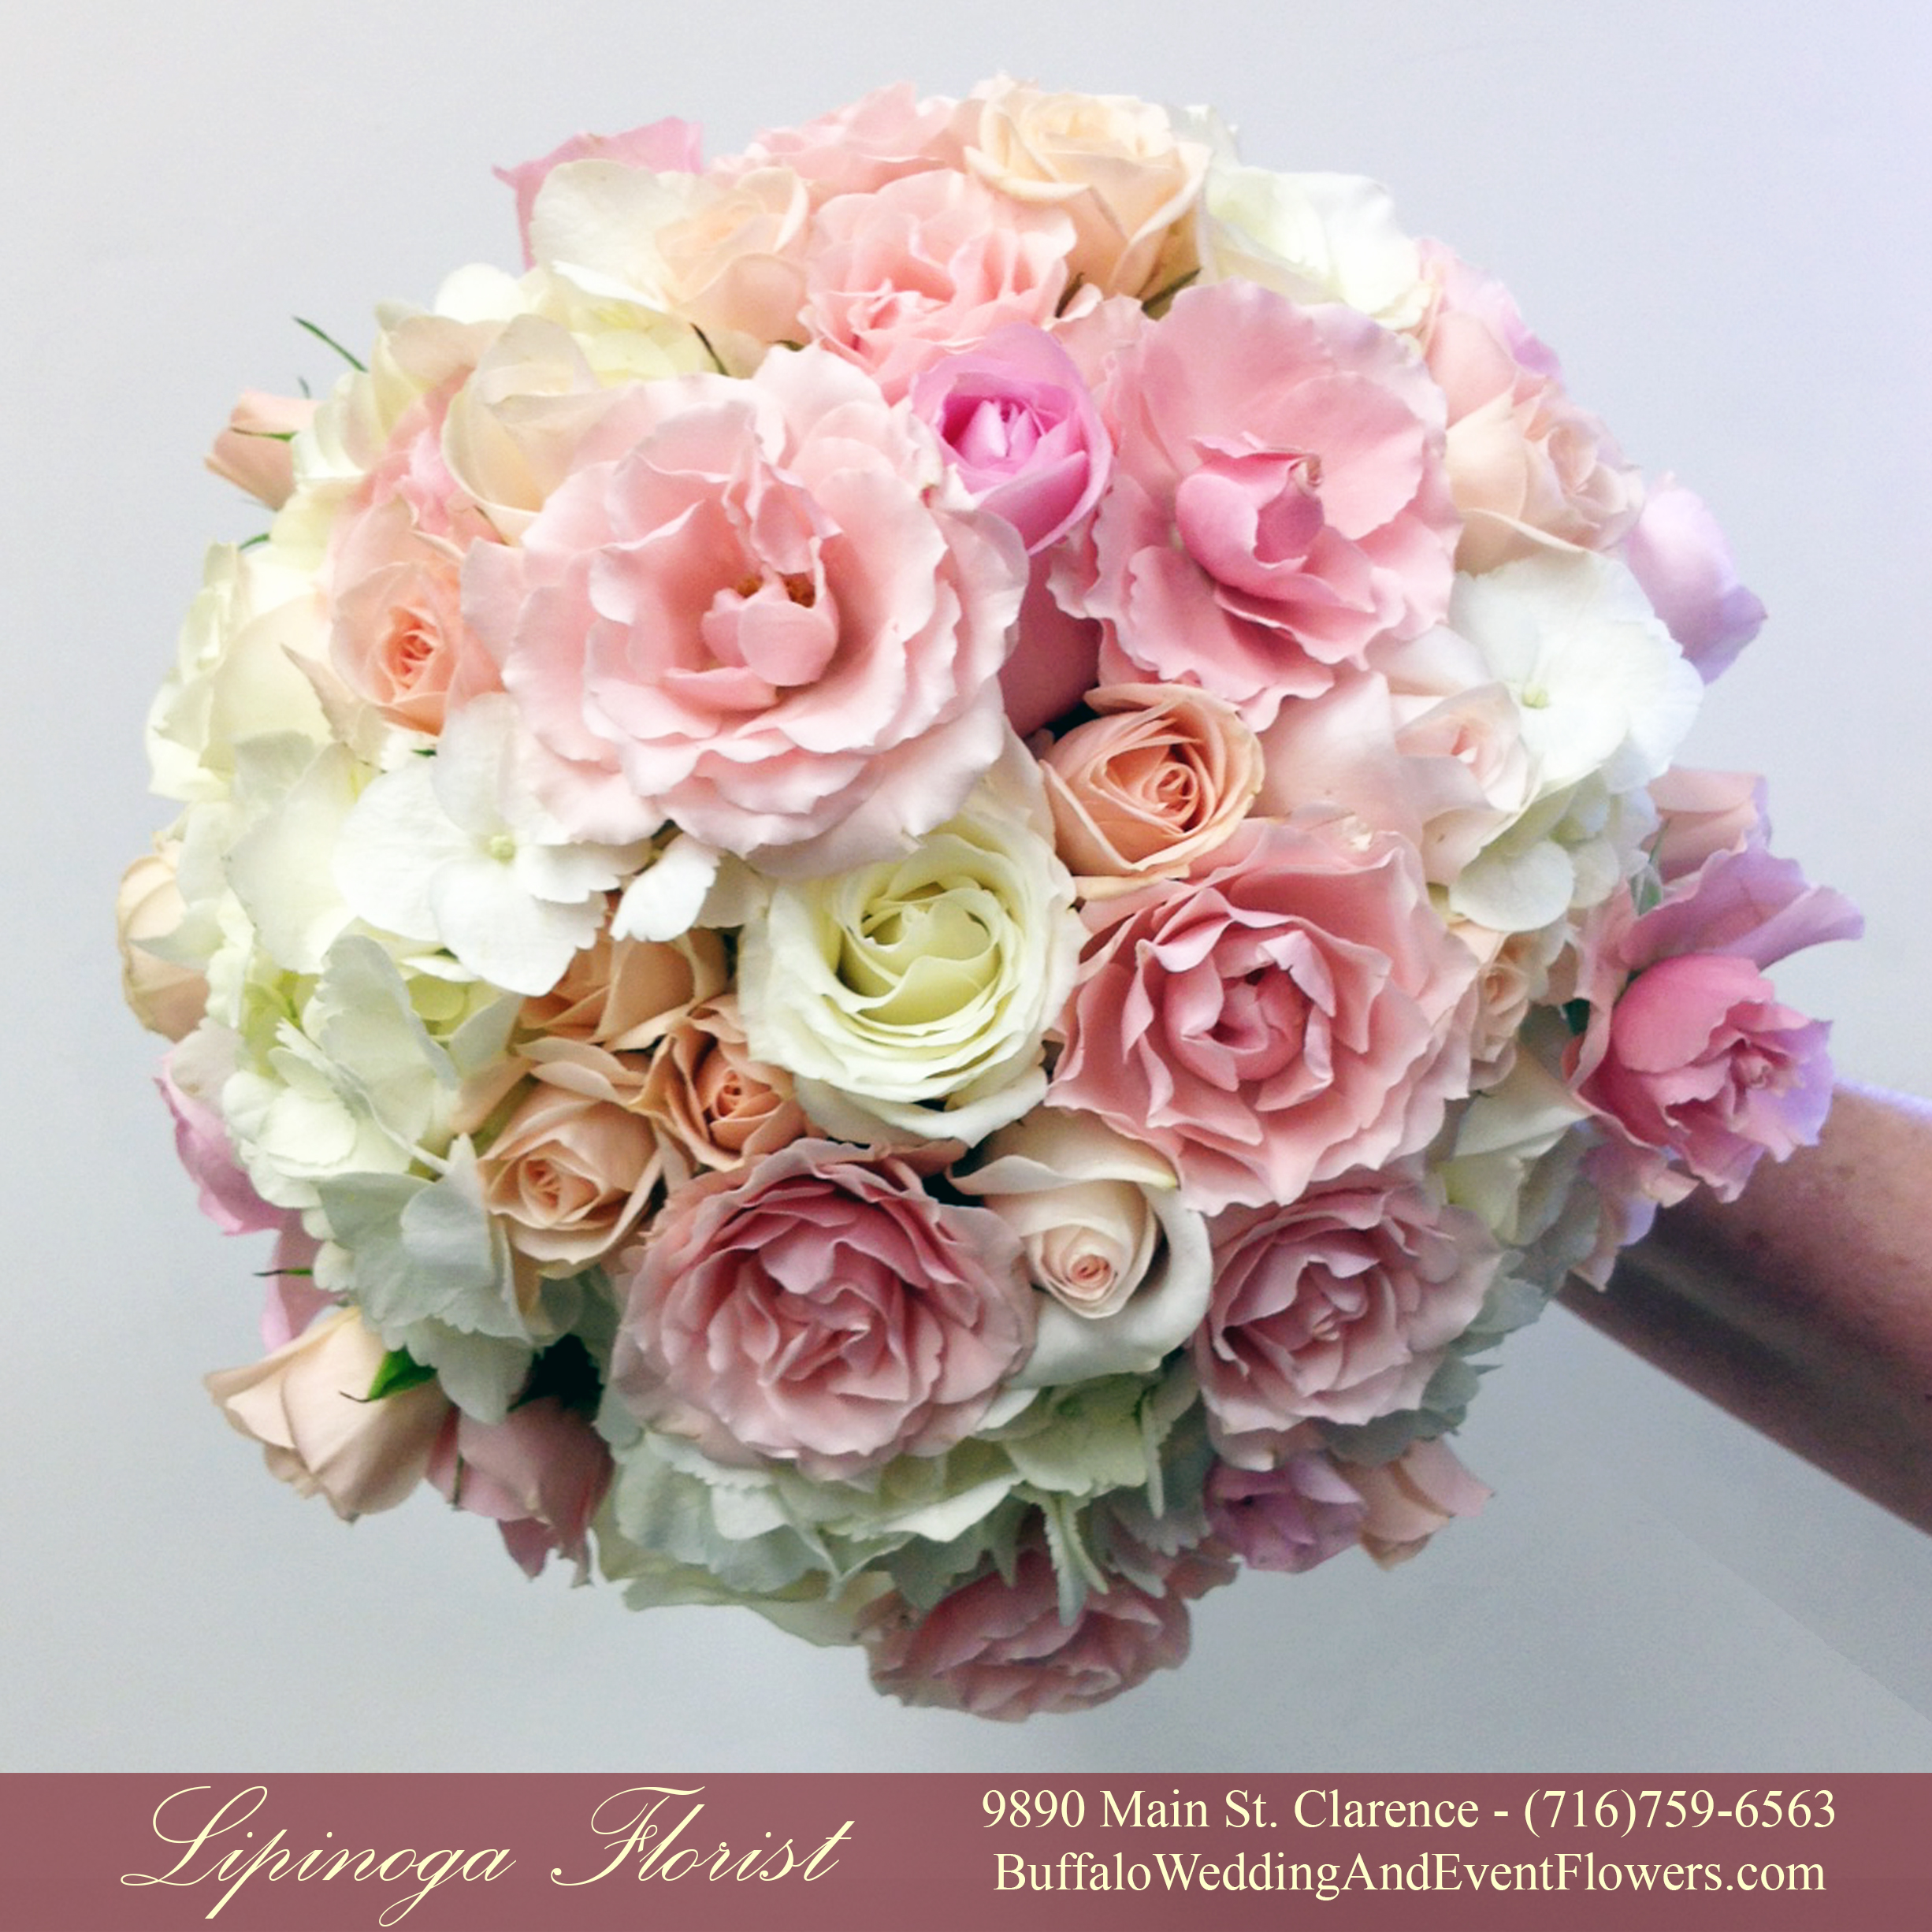 Romantic Wedding Flowers | Buffalo Wedding & Event Flowers by ...